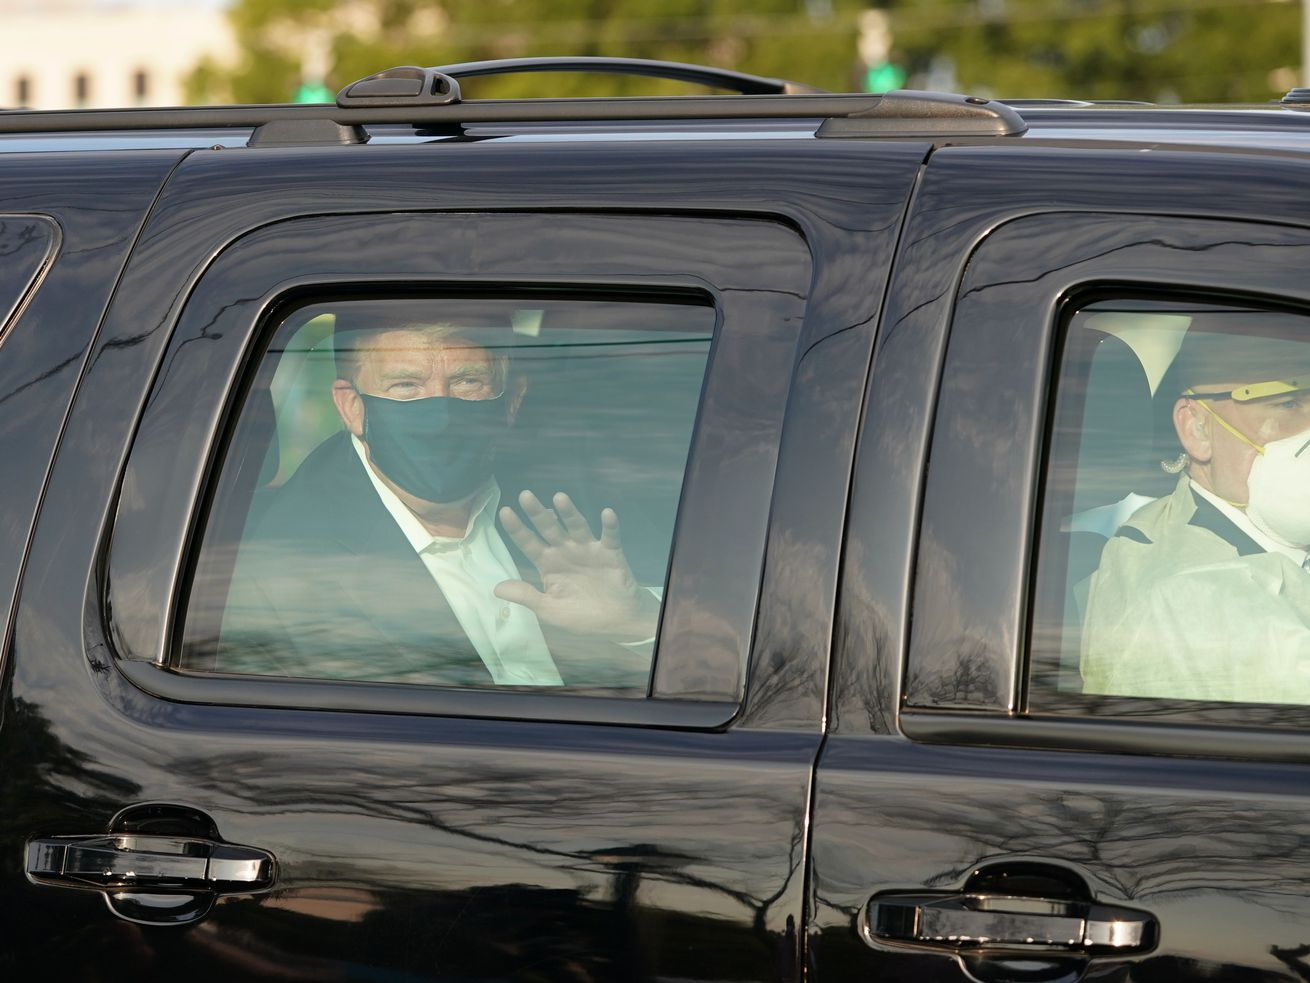 President Donald Trump in the back of a car in a motorcade outside of Walter Reed Medical Center, where he's getting treatment for Covid-19.